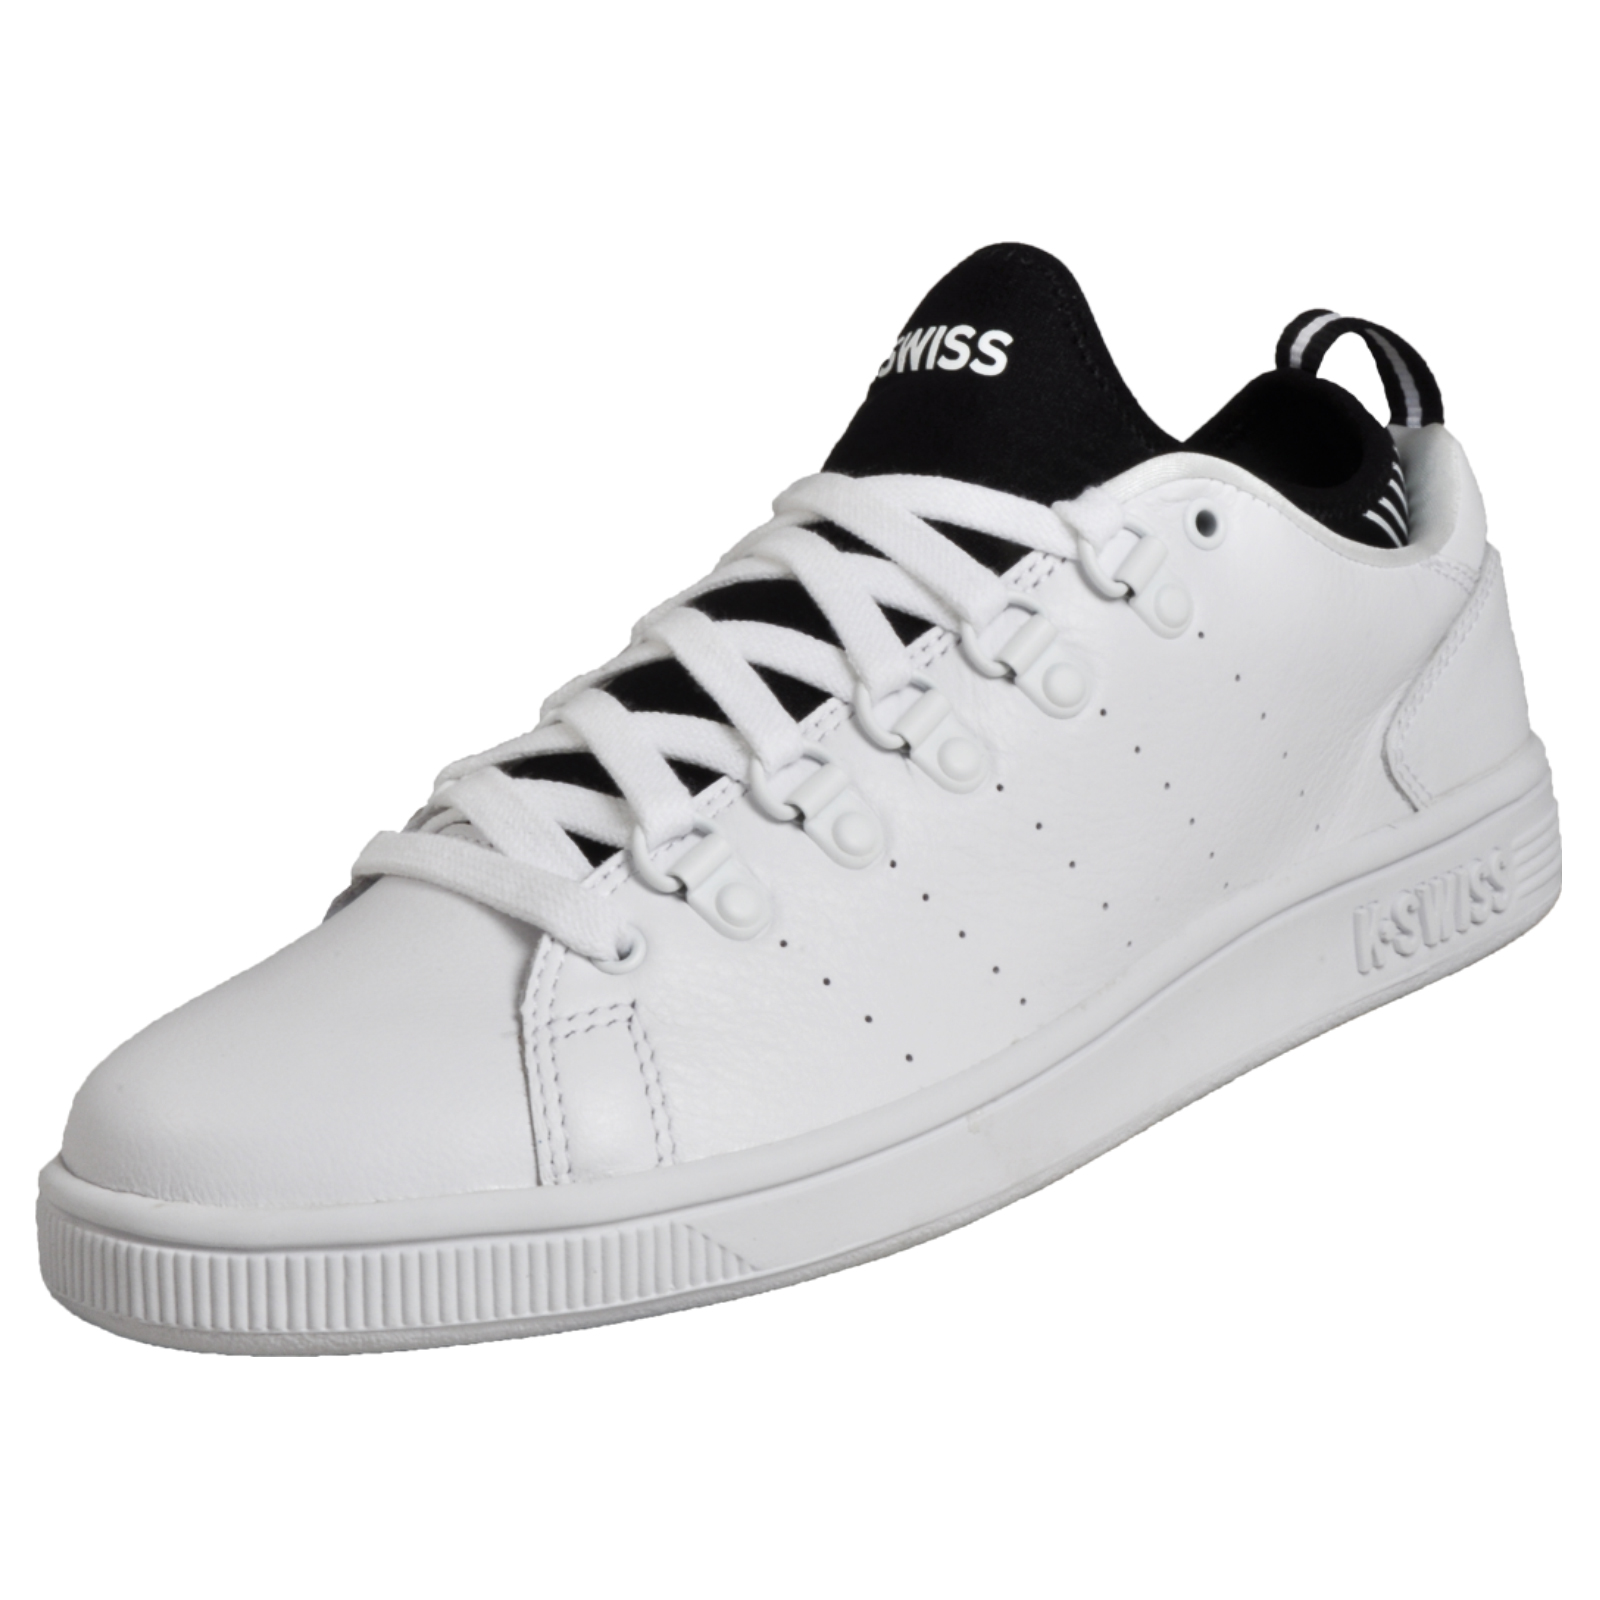 7c8e7b88399cf6 Details about K Swiss Lozan Sport Men s Classic Casual Leather Fashion  Trainers Sneakers White